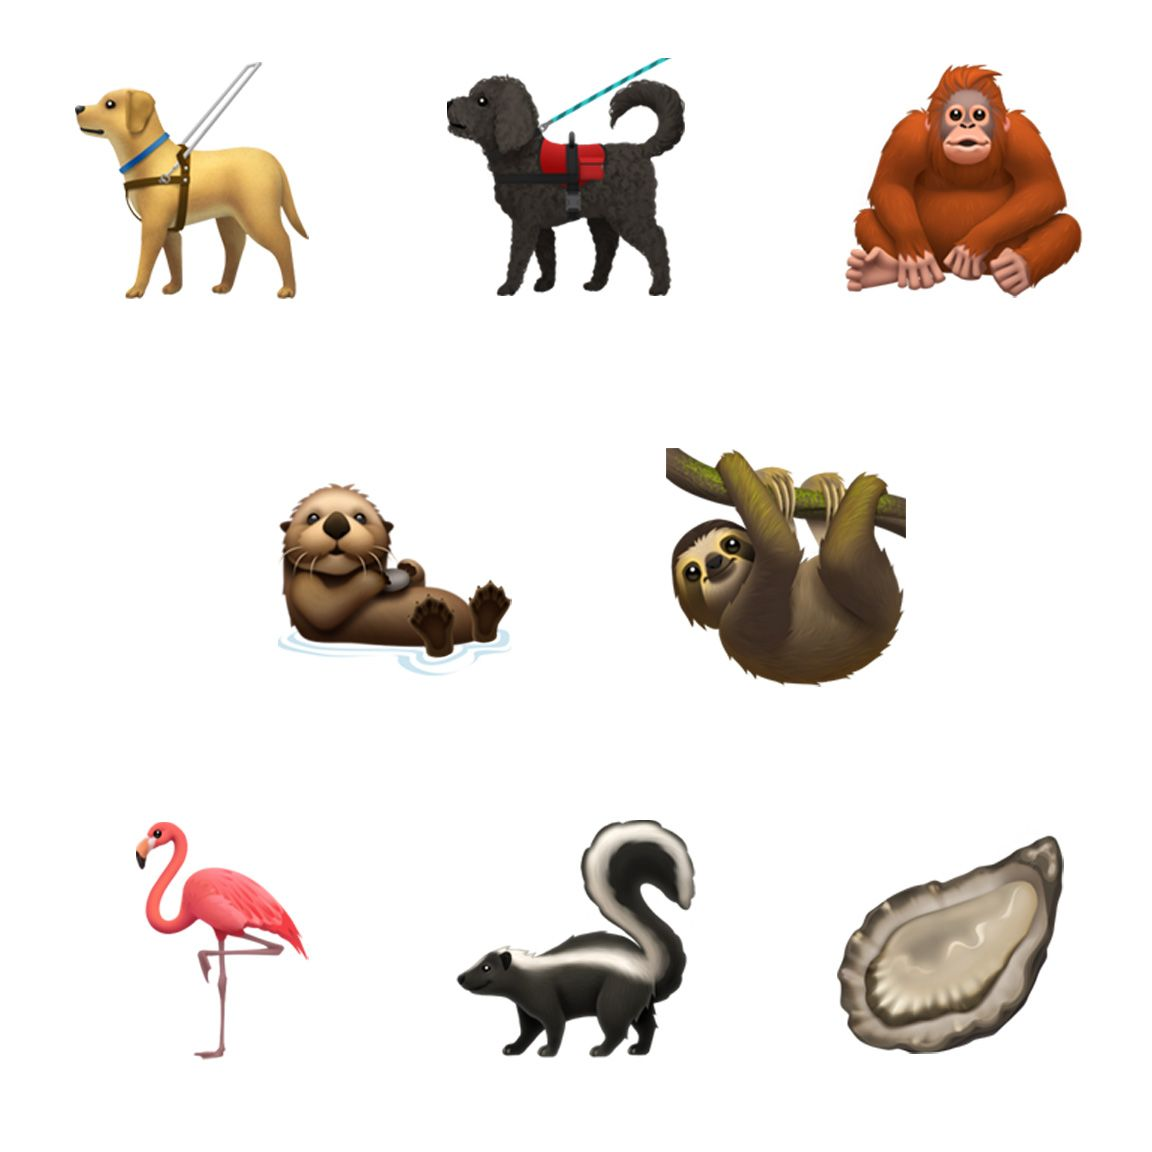 Emojipedia-Apple-iOS-13.2-Emoji-Changelog-Animals